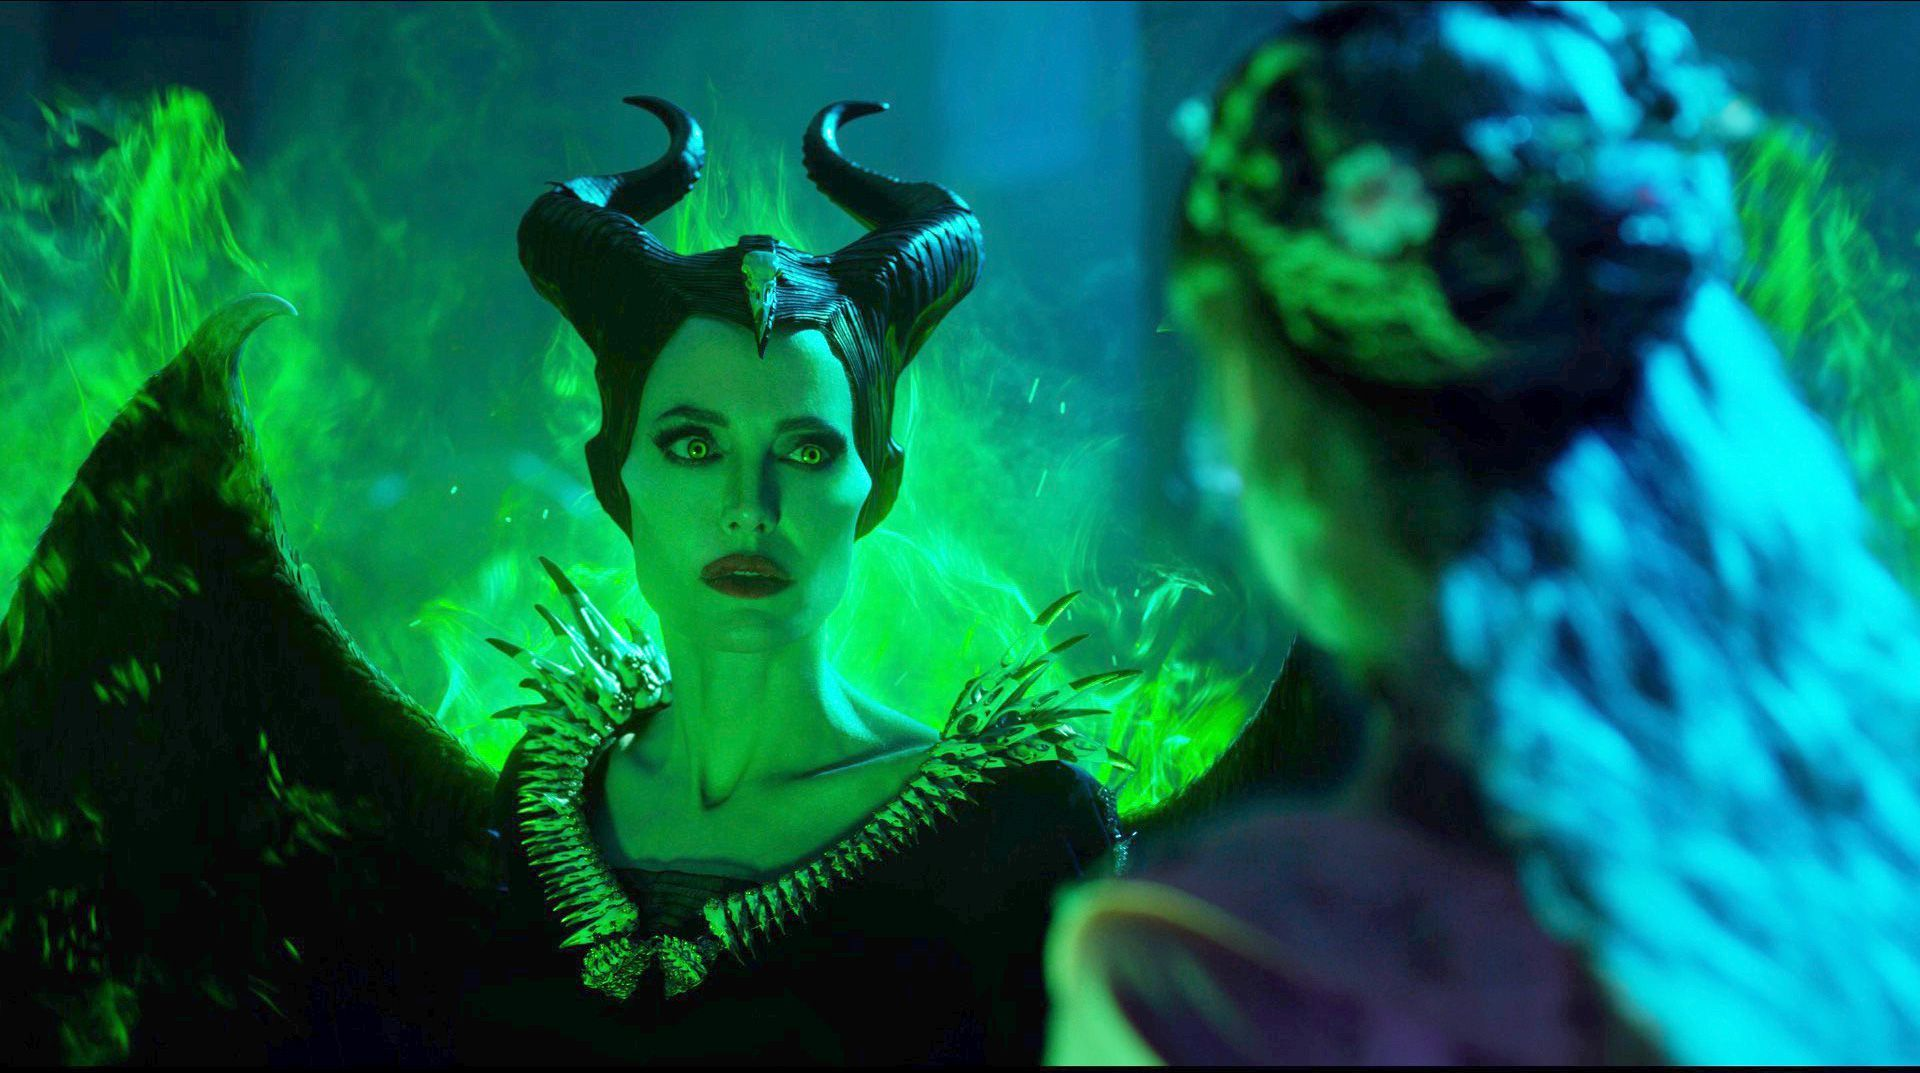 Maleficent: Mistress of Evil delivers Mamma Mia! for Game of Thrones fans